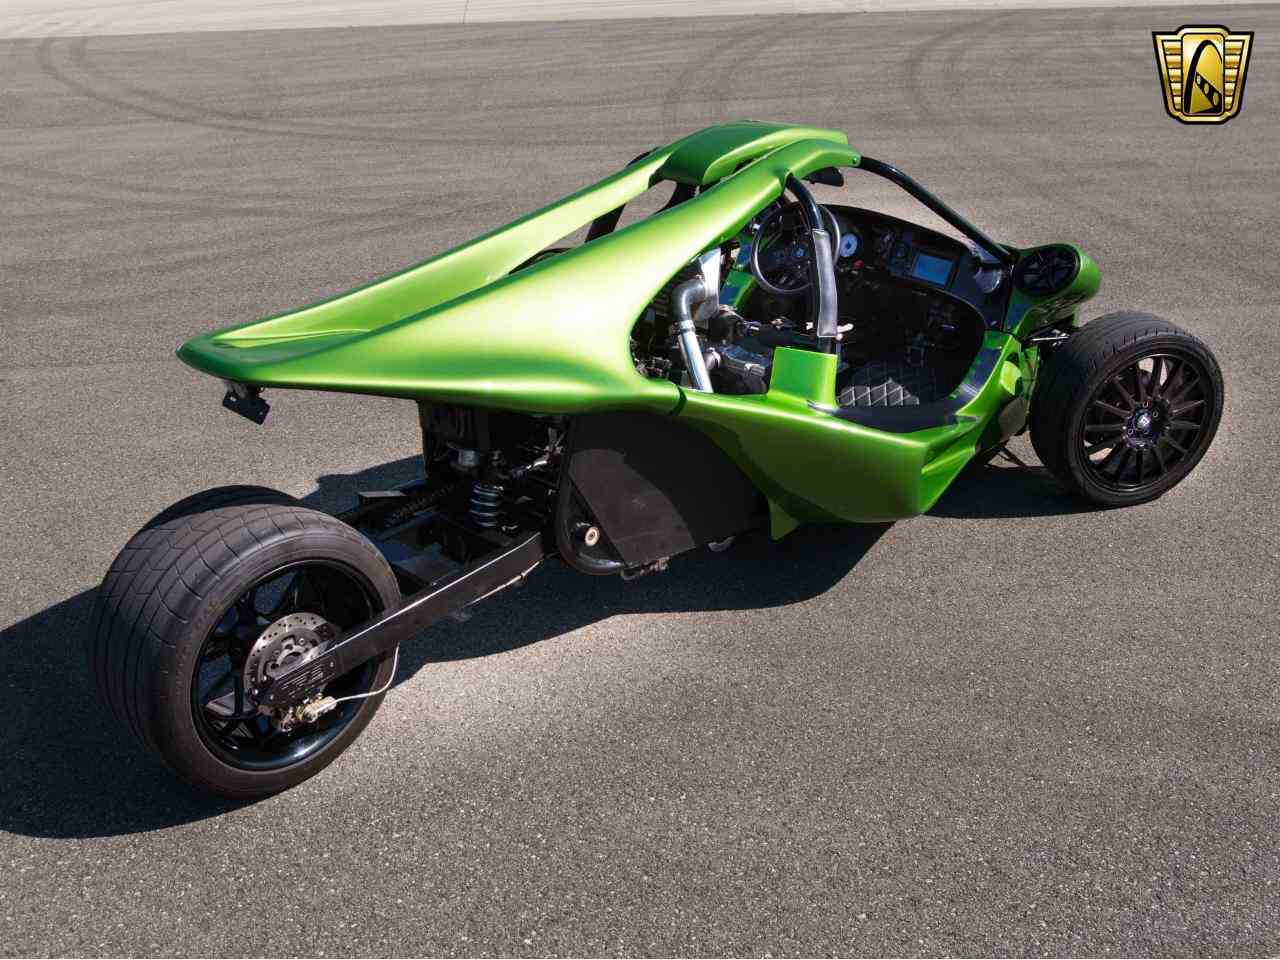 Large Picture of 2008 Kawasaki T-Rex Replica located in Kenosha Wisconsin - $44,595.00 Offered by Gateway Classic Cars - Milwaukee - L7NA